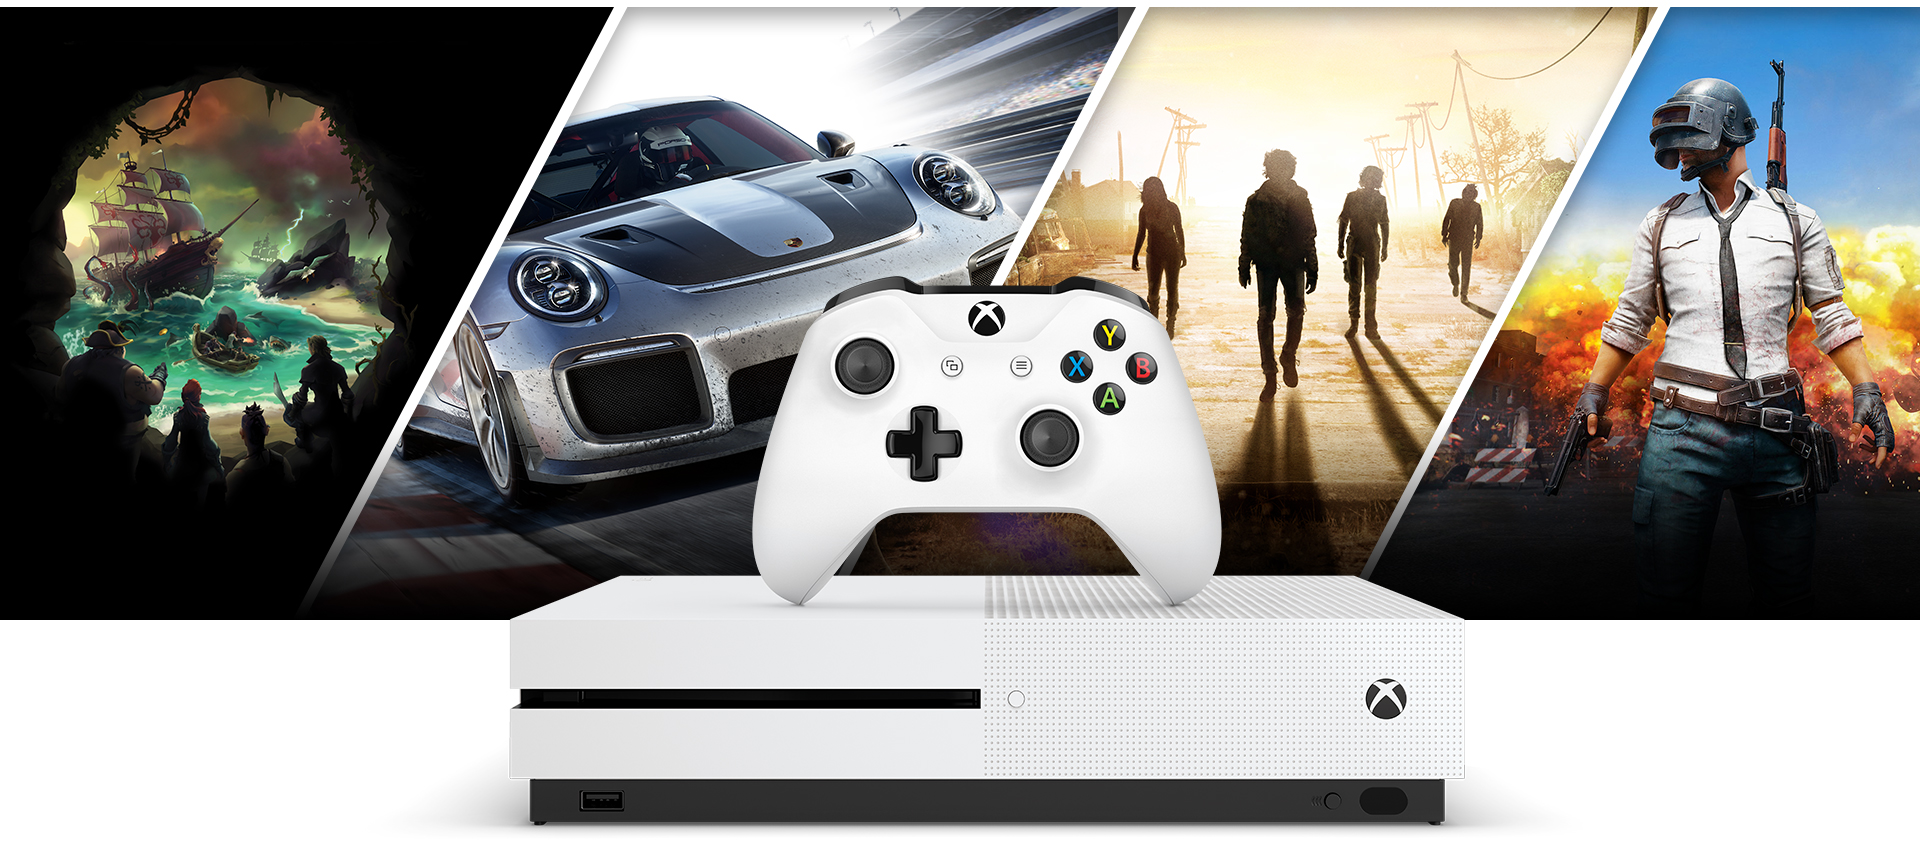 Sea of Thieves Forza 7 State of Decay 3 and PlayerUnknown's Battlegrounds graphics behind an Xbox One S and White Xbox Controller